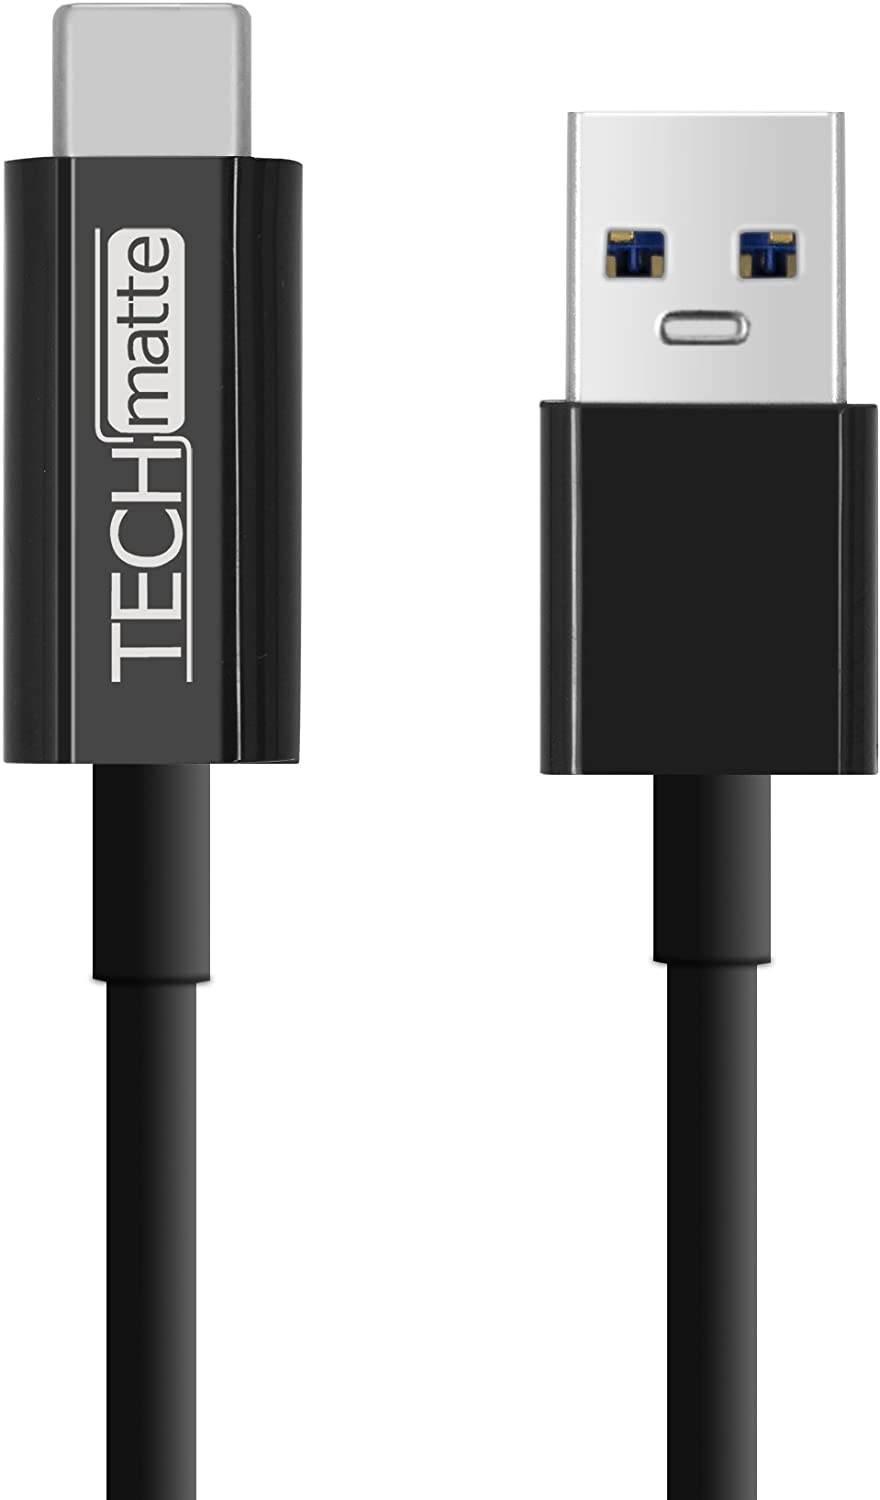 Cable for Google Pixel Nexus 5X LG G5 USB-C to USB 1FT,3 FT, 5FT Black OnePlus 3 USB Type C Cable 3 Pack TechMatte USB 3.0 Type C to Type A 6P 1FT,3FT,5FT Pixel XL HTC 10